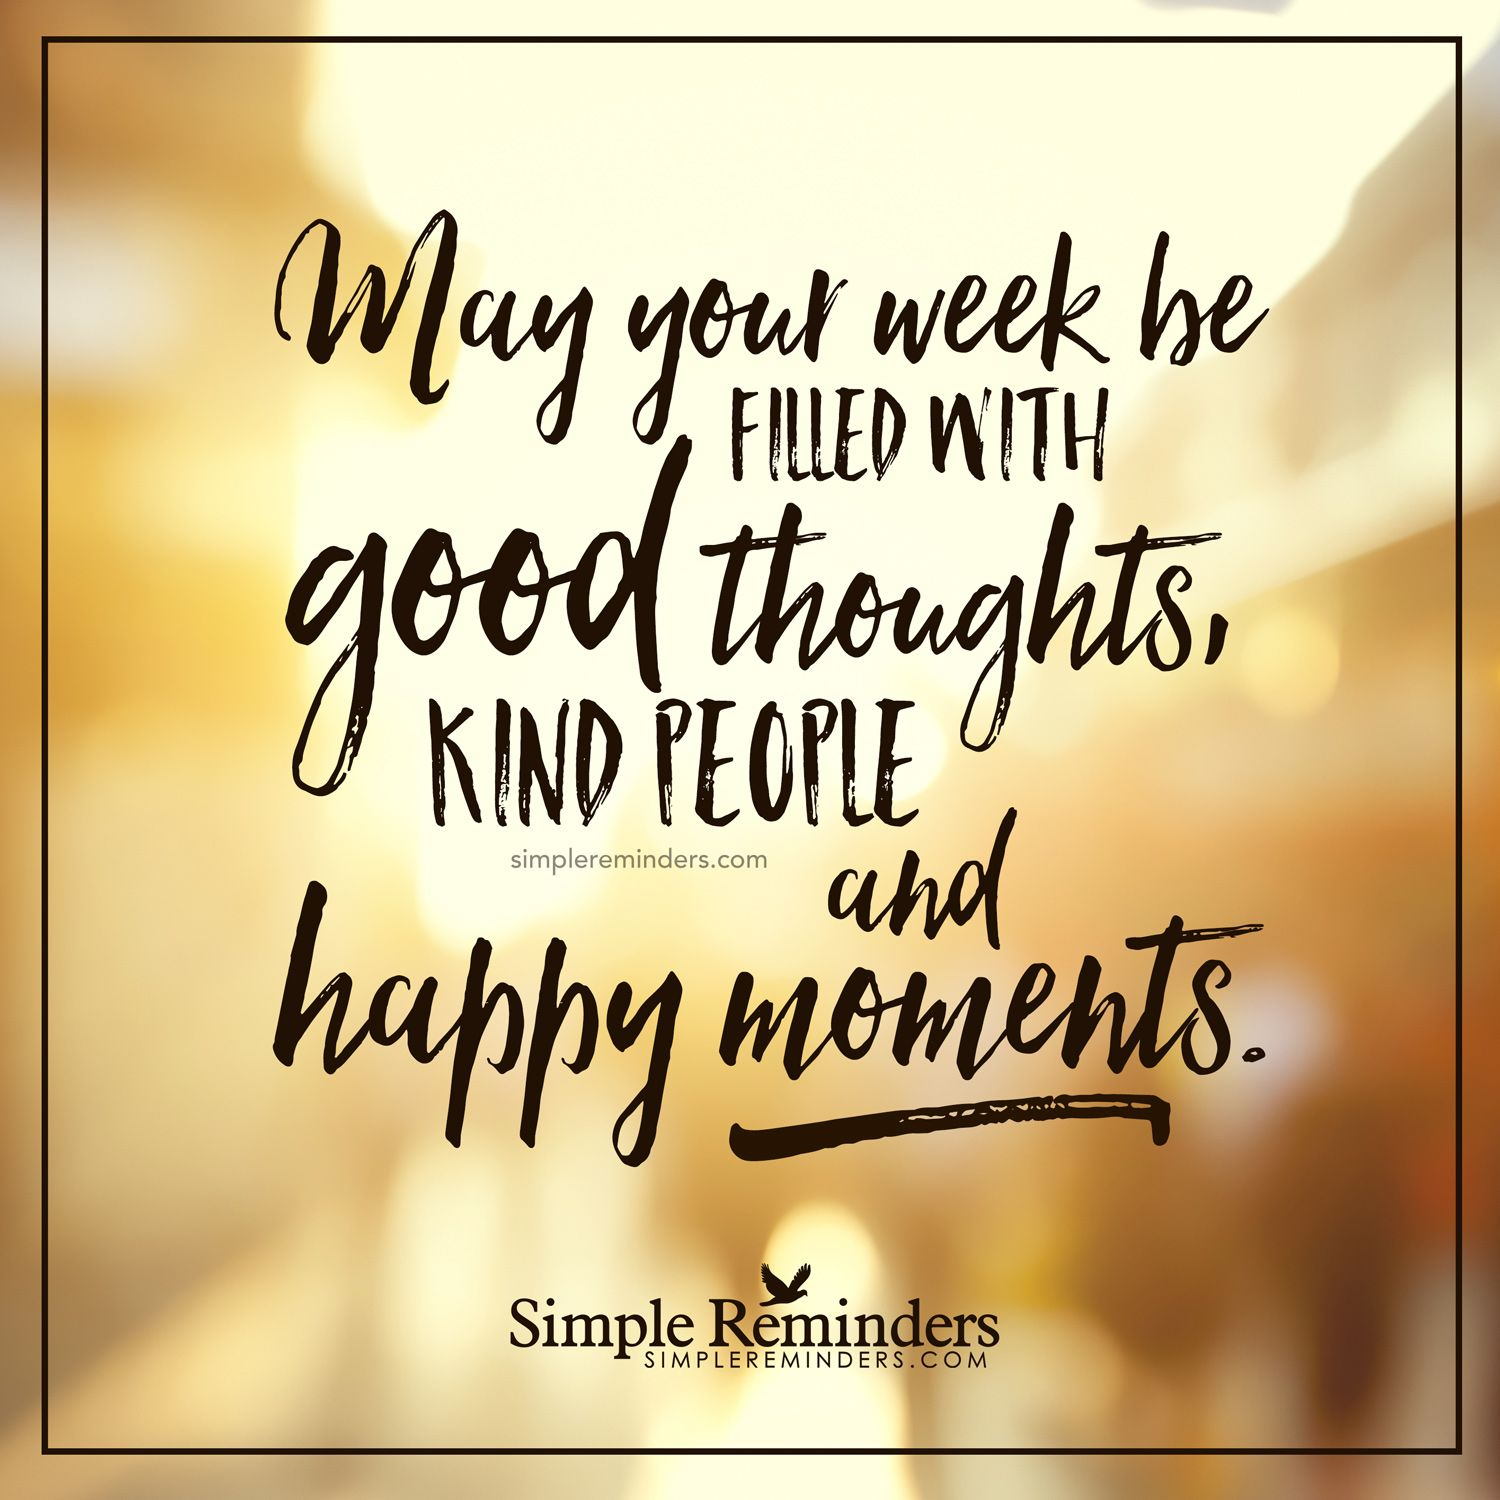 Fill Your Week With Happy Moments May Your Week Be Filled With Good